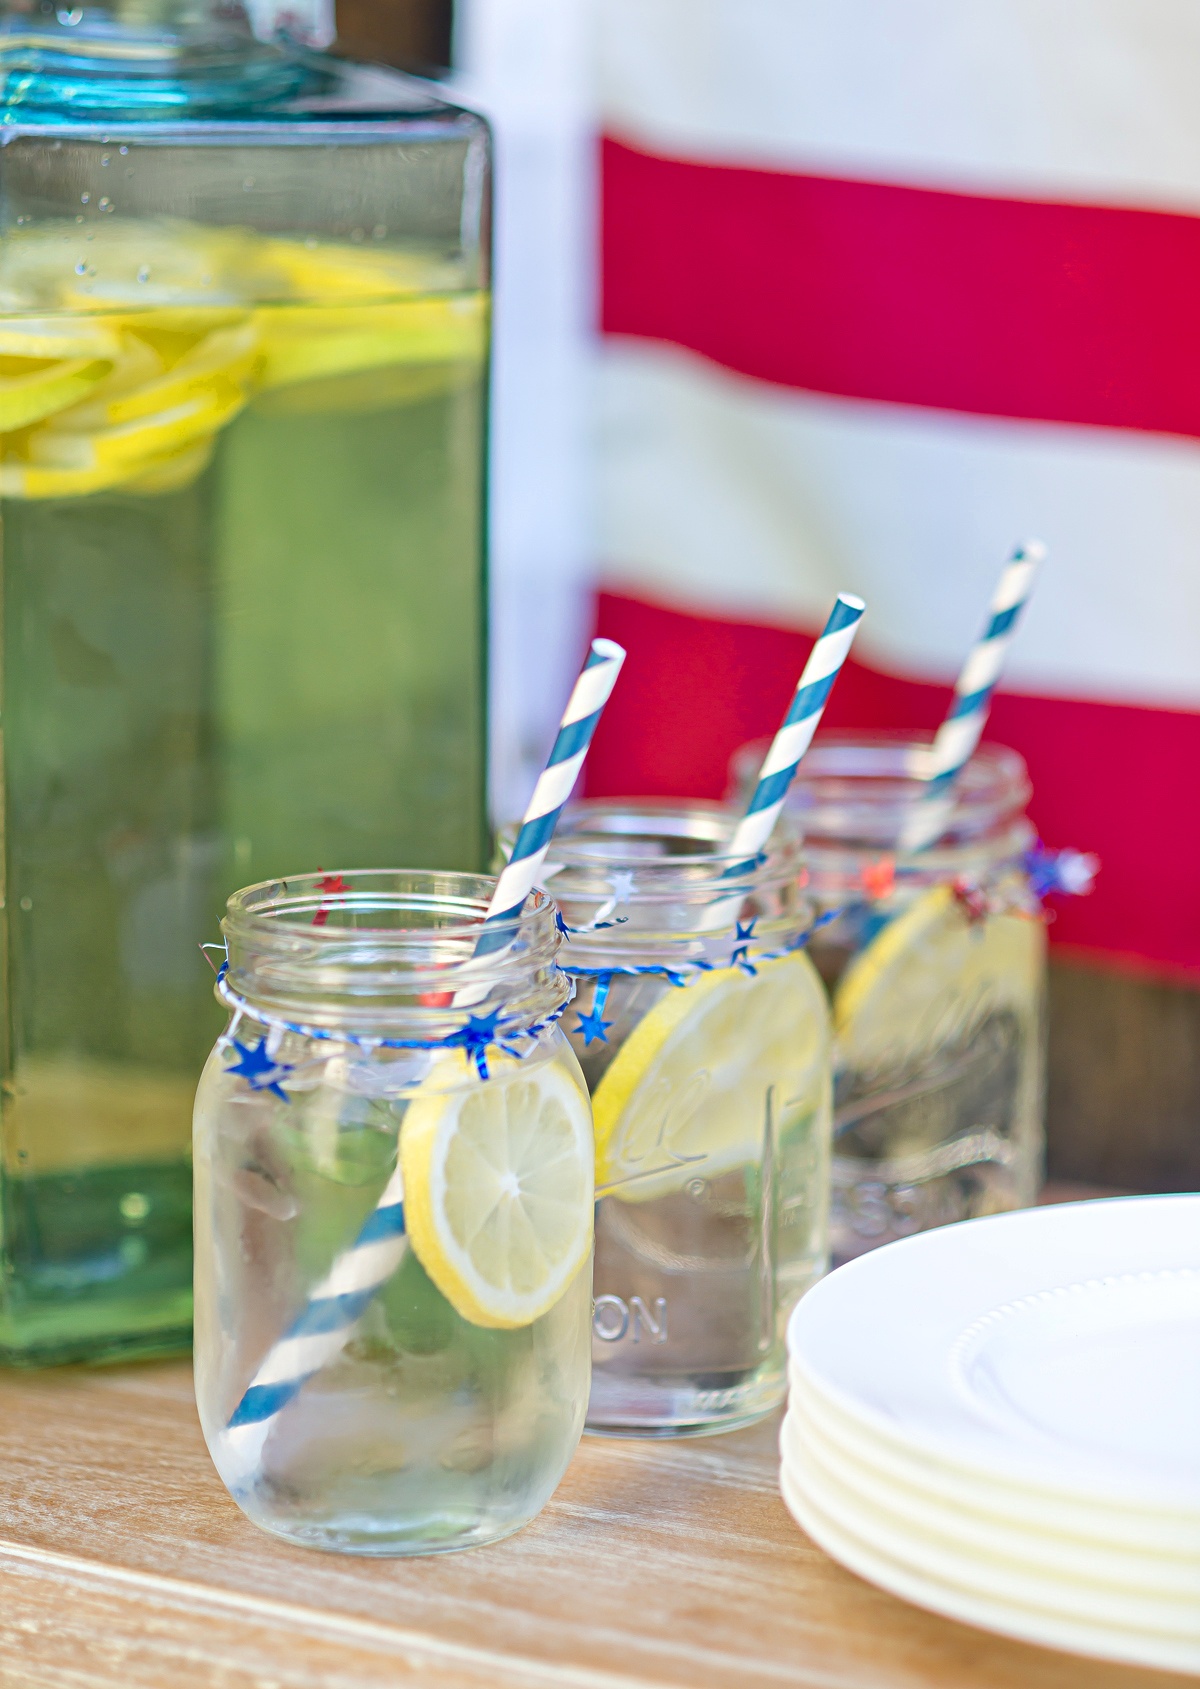 Hydrate your guests with flavored water! Fun star twill and striped straws make for great 4th of July details! #4thofjuly #flavoredwater #decorations